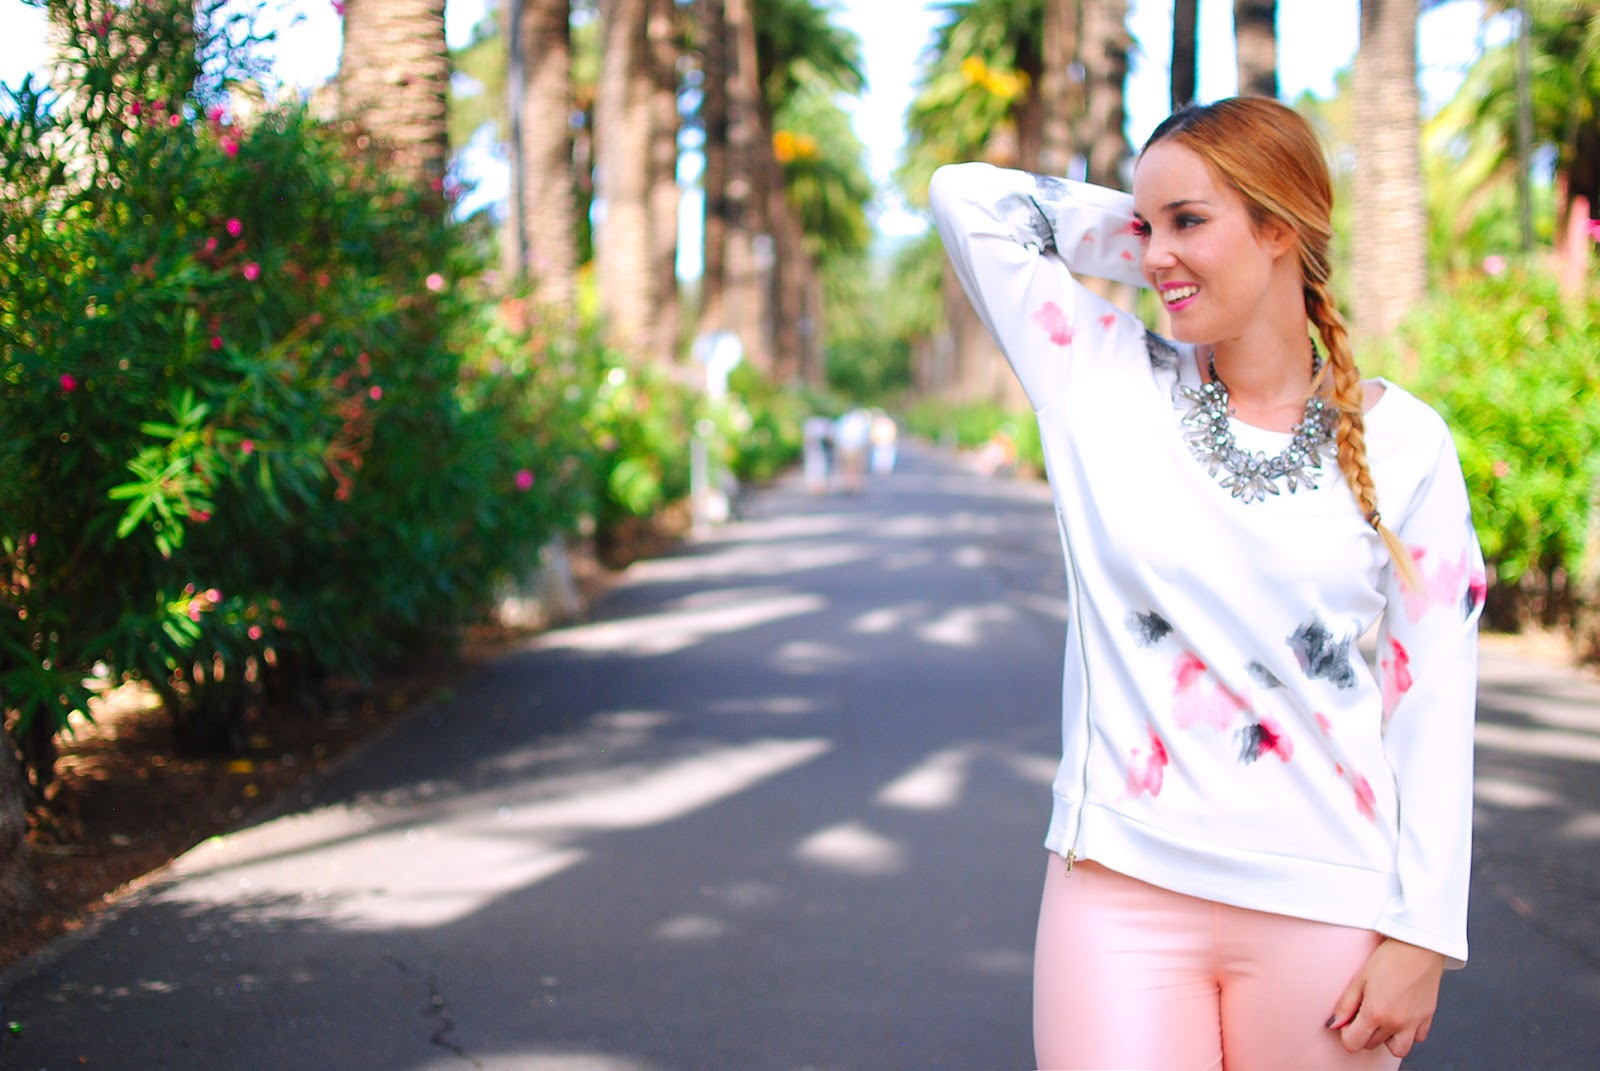 NERY HDEZ, two pieces, dos piezas, lovelyshoes, zara necklace, pink leggins